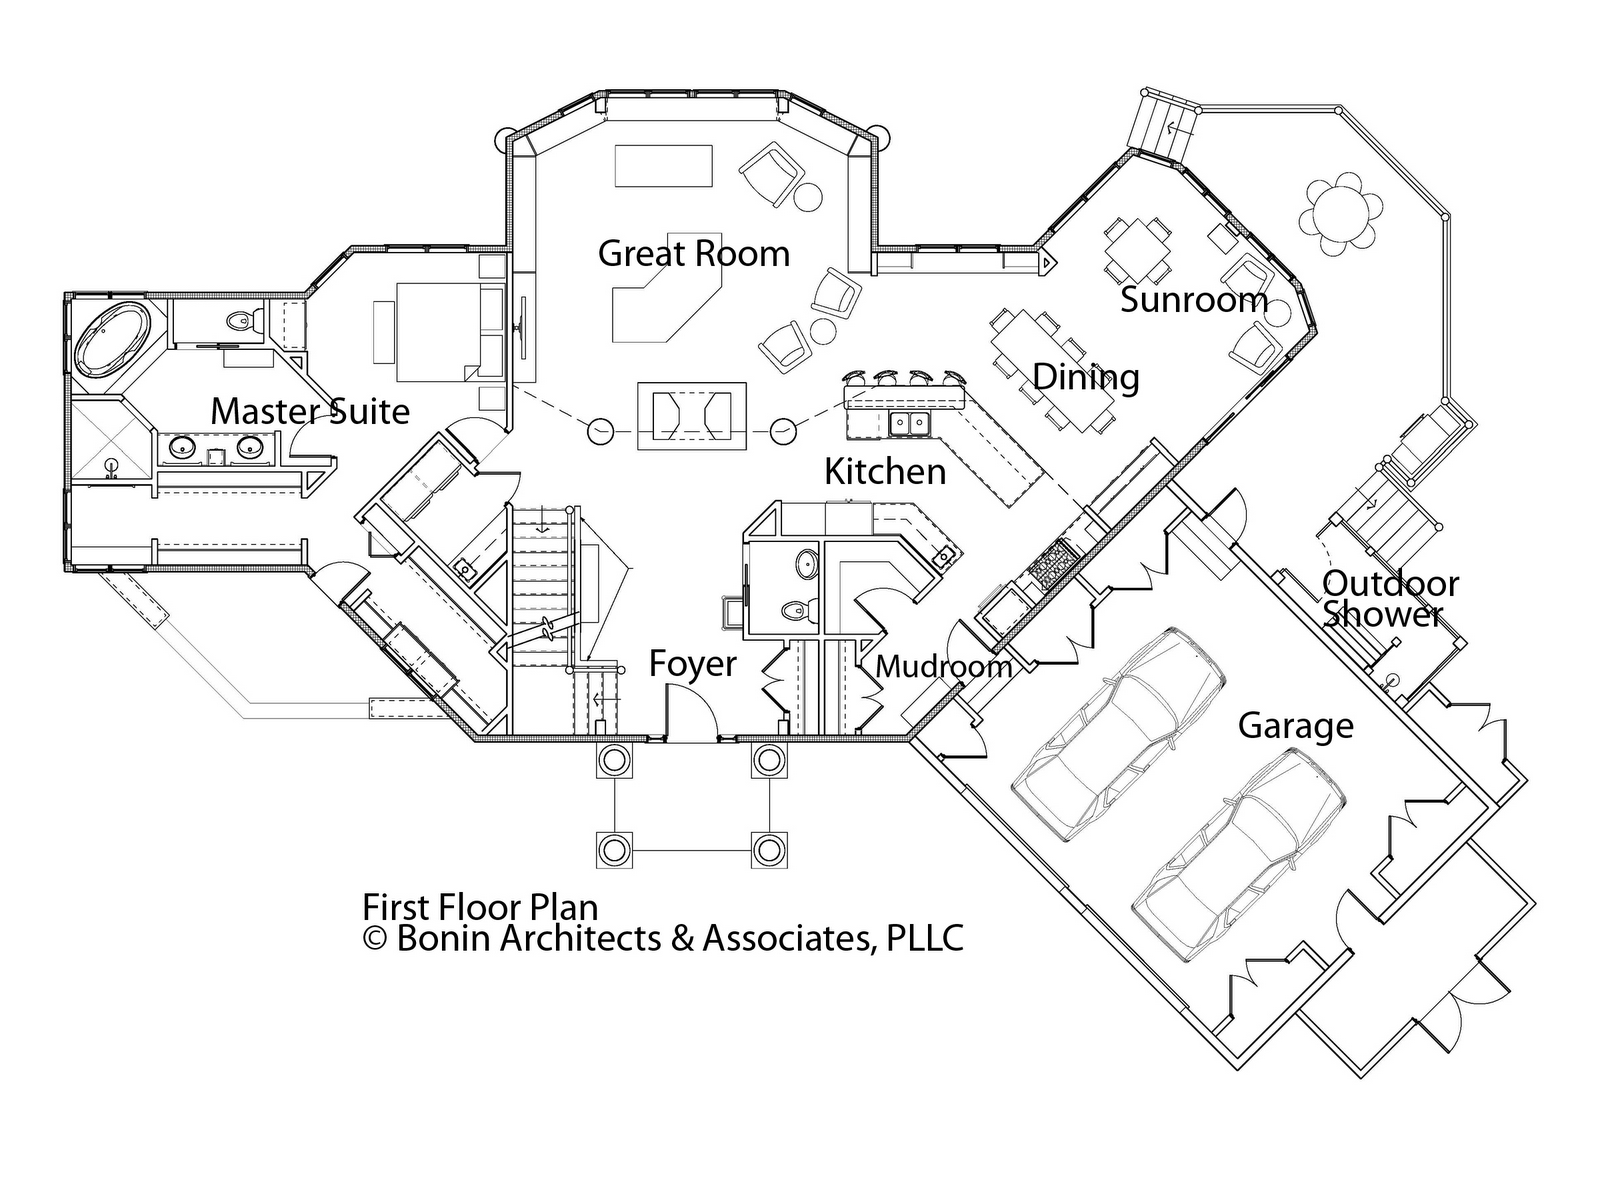 winnipesaukee timber home floor plan gif 1 600 1 200 pixels ideas I Beam Apartments winnipesaukee timber home floor plan gif 1 600 1 200 pixels